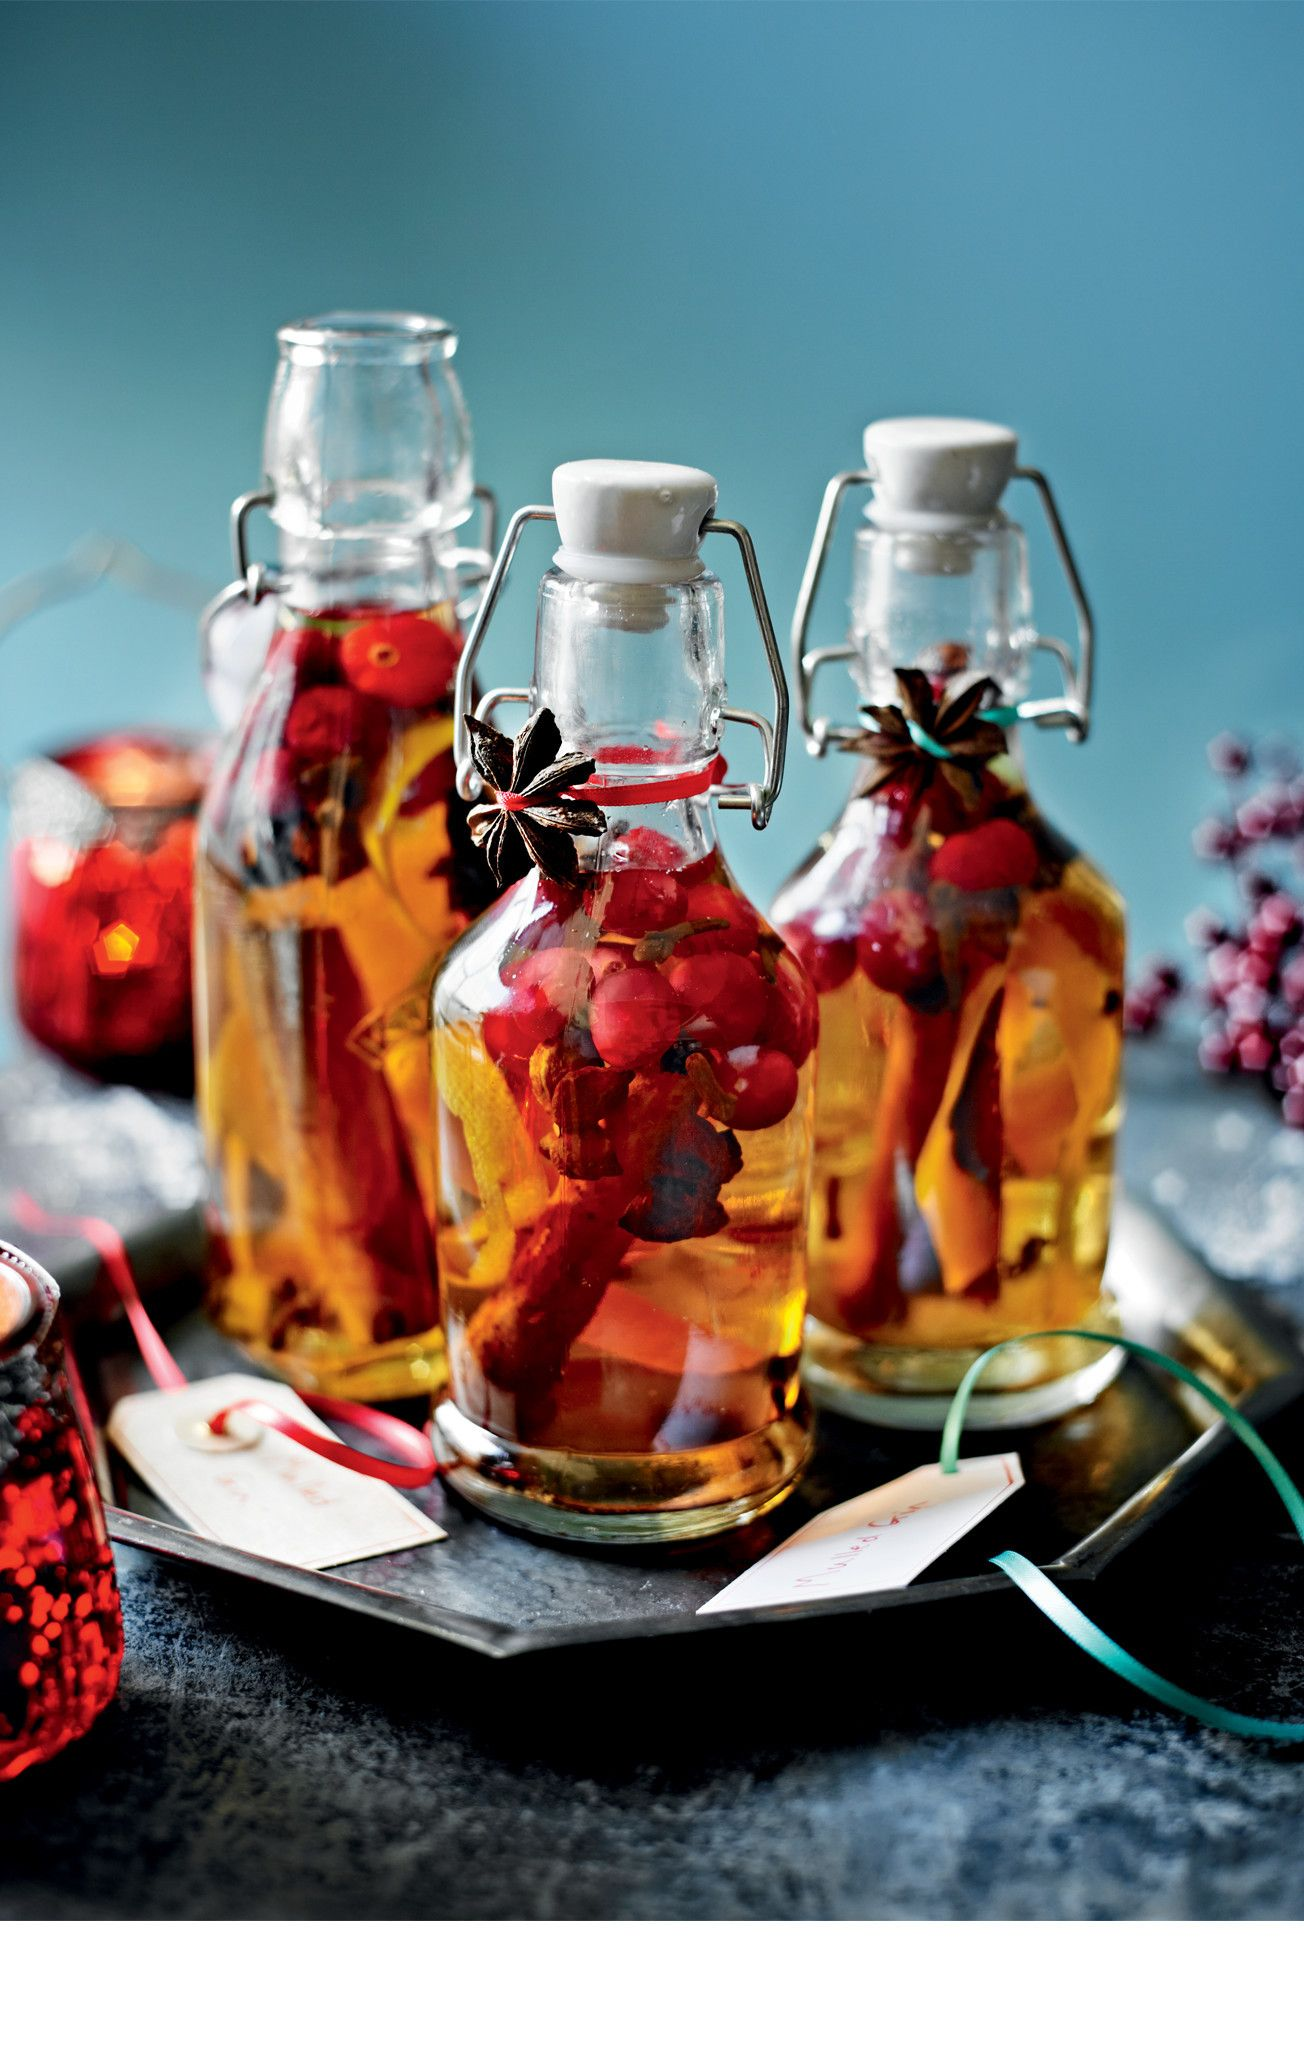 Mulled Gin November 2014 Gin Recipes Homemade Drinks Christmas Gin